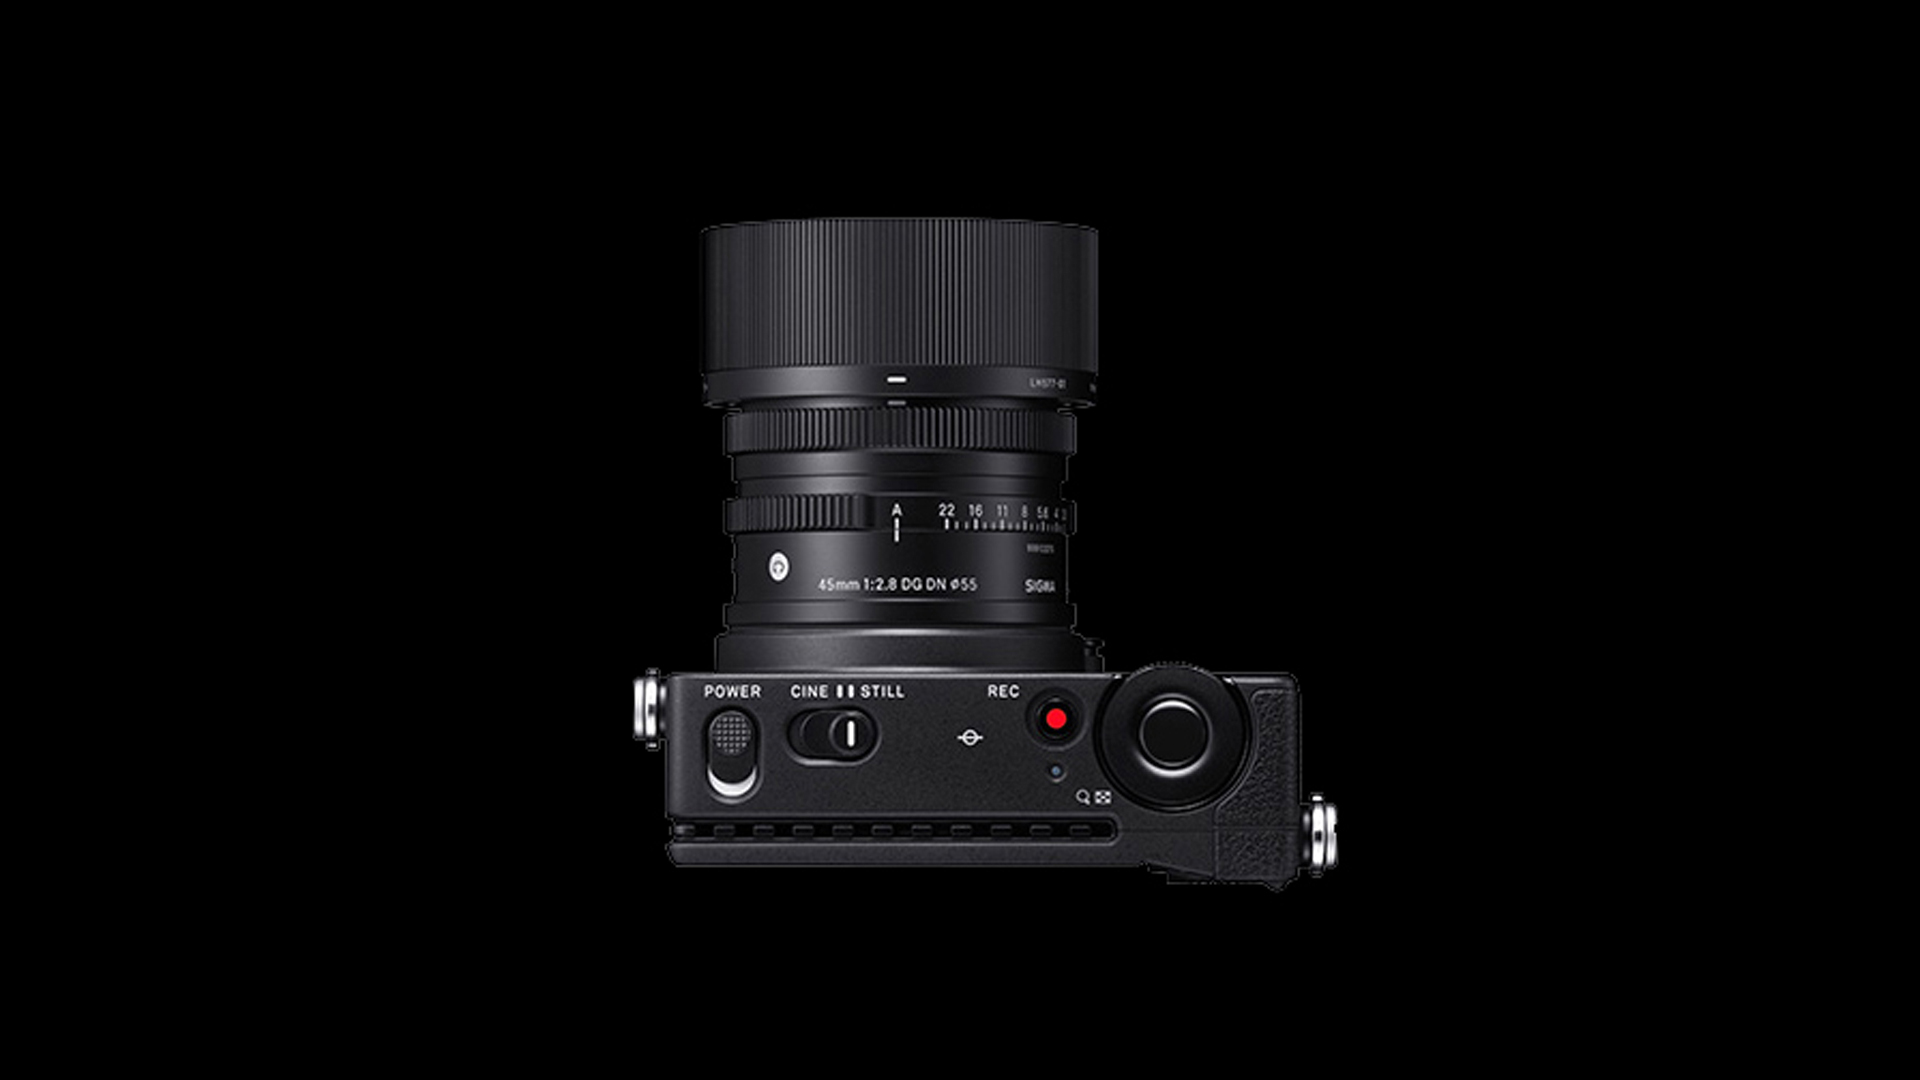 Operating conditions of the SIGMA 24-70 mm F2.8 DG DN | Art for SONY E-mount with the SONY ?7S III